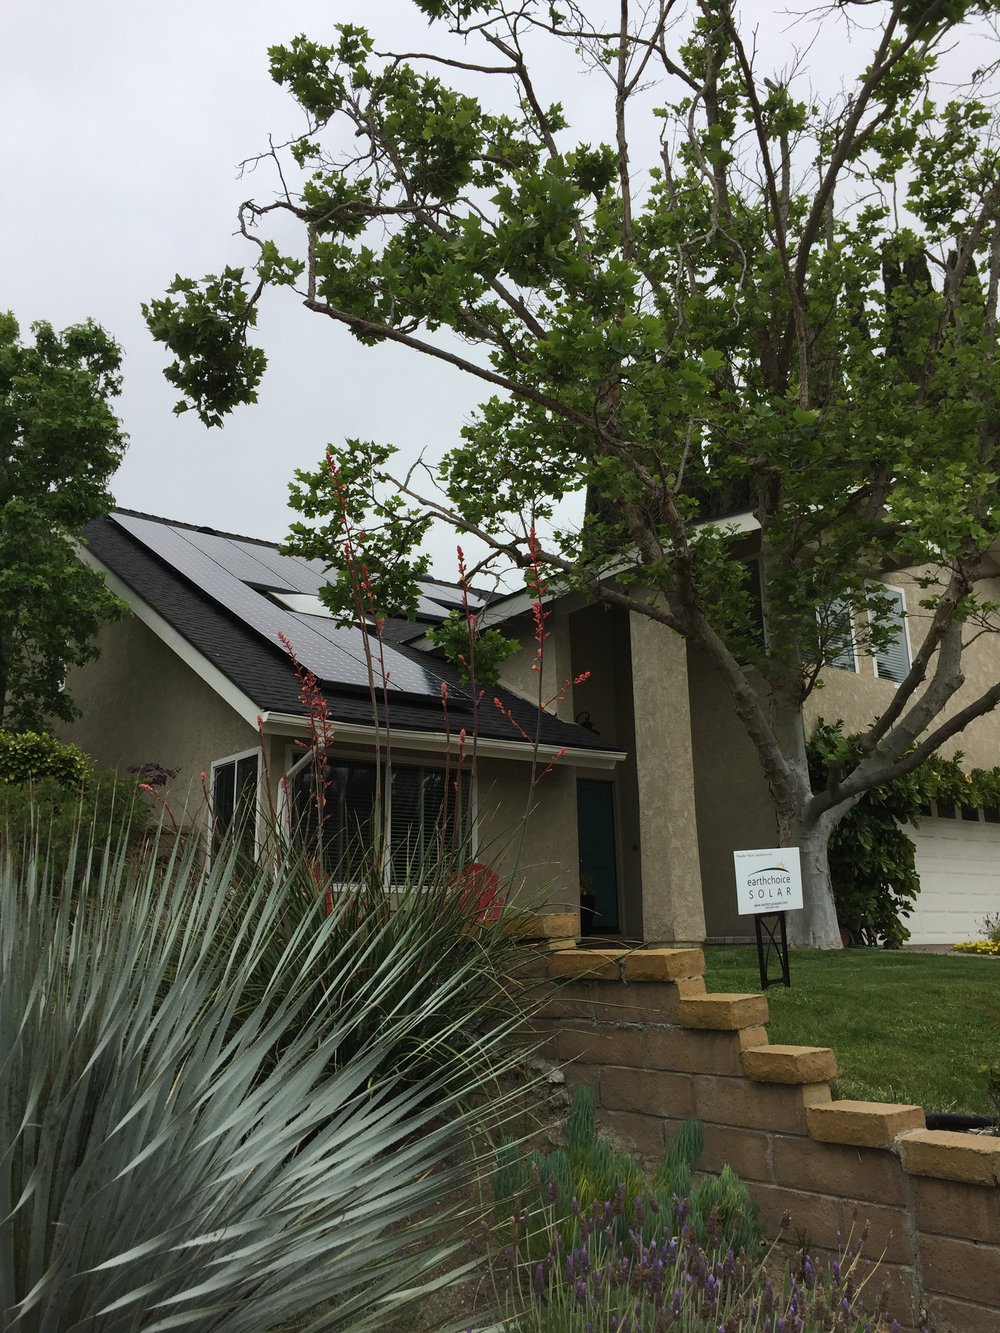 LAGUNA HILLS, CA - 19 high efficiency PV modules total to 6.84 kWDC located in Laguna Hills.  This system was commissioned in 2018 and is expected to save the Homeowner over $150,000 in electricity bills over the next 25 years.